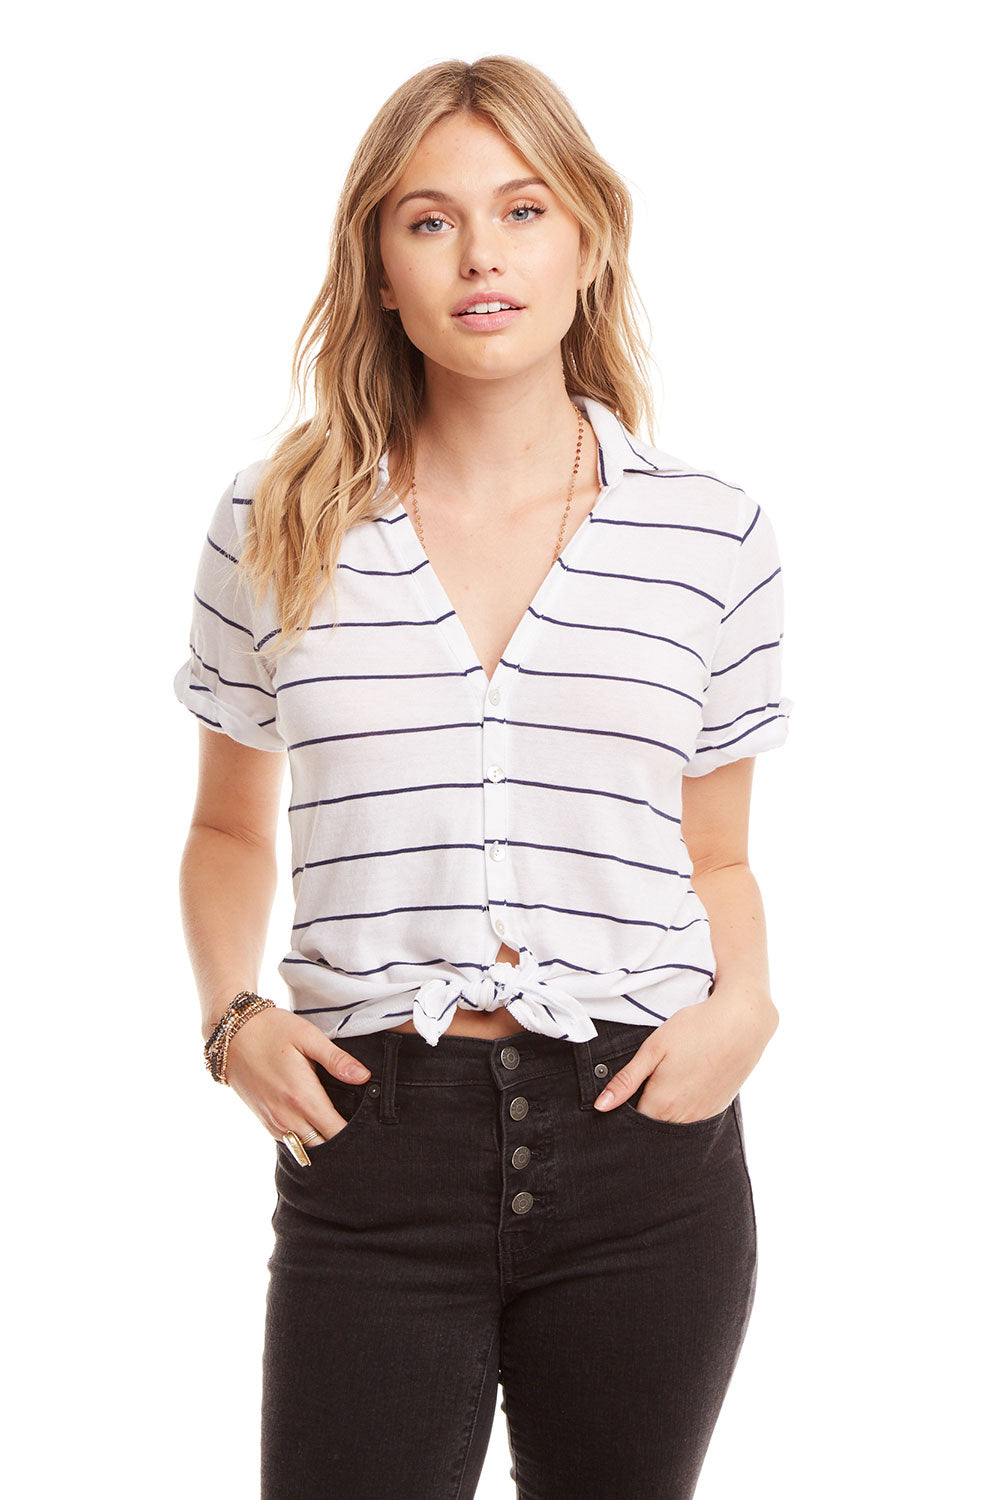 Gauzy Cotton Rolled S/S Button Down Shirt WOMENS chaserbrand4.myshopify.com